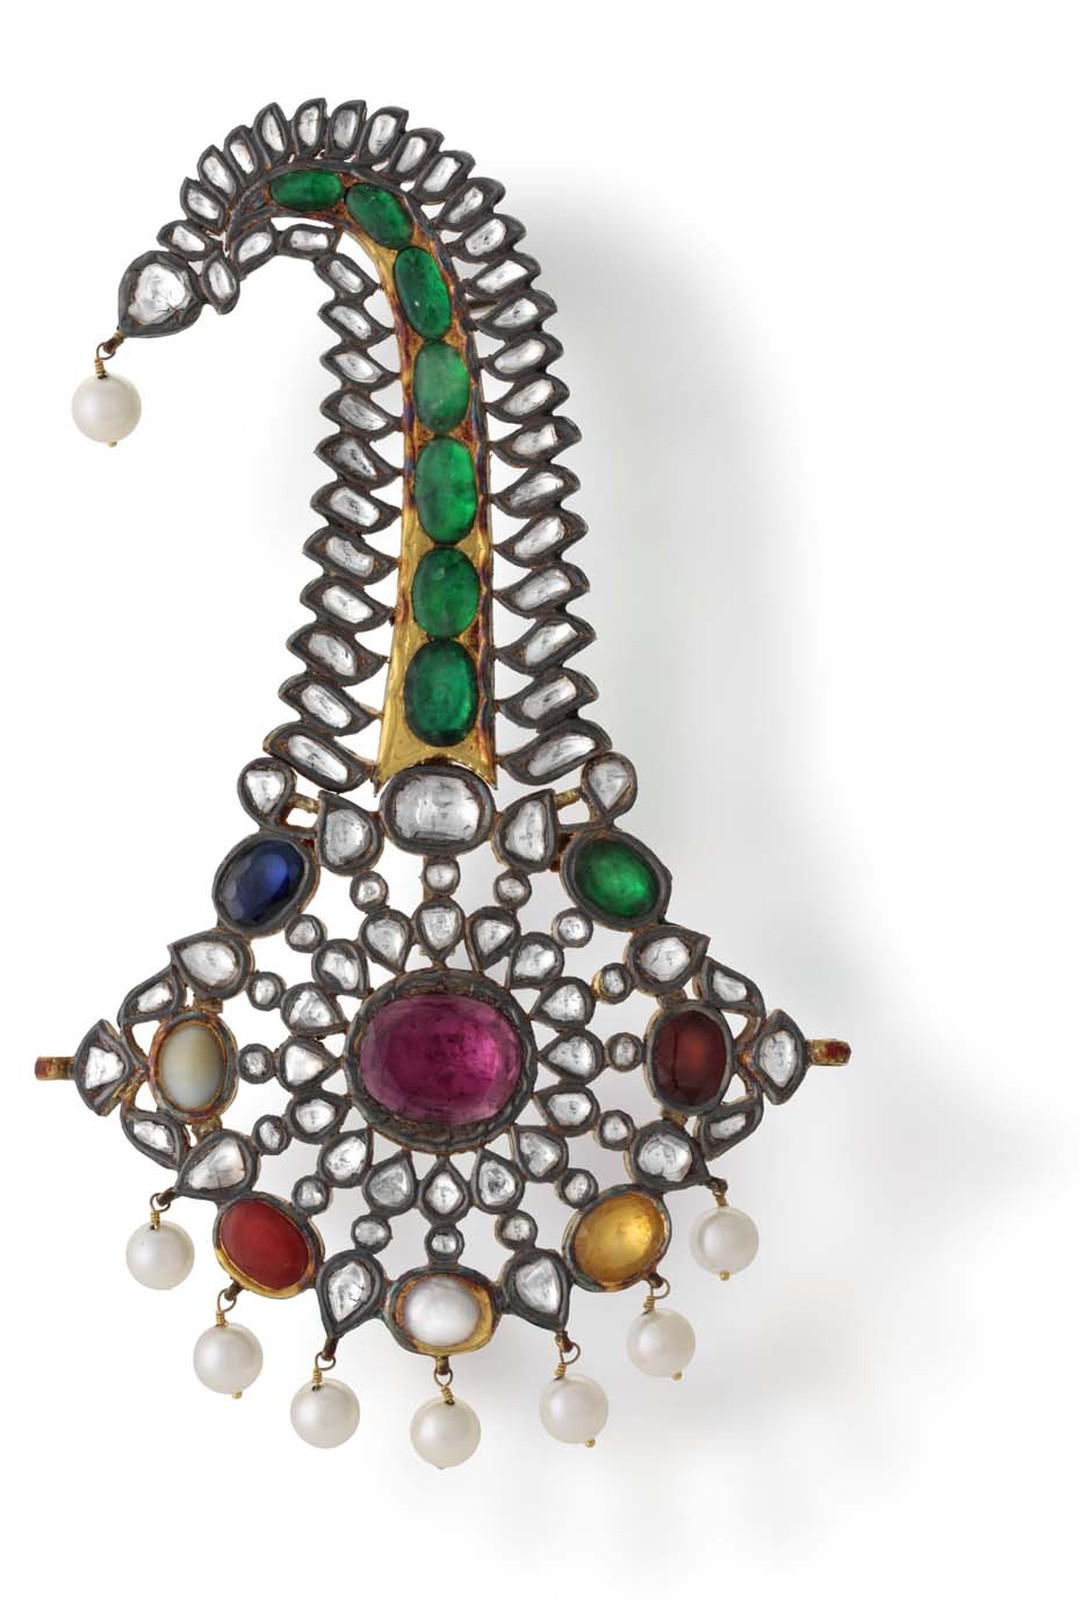 A sacred combination of nine gemstones called a Navratna decorate this Hazoorilal sarpech.